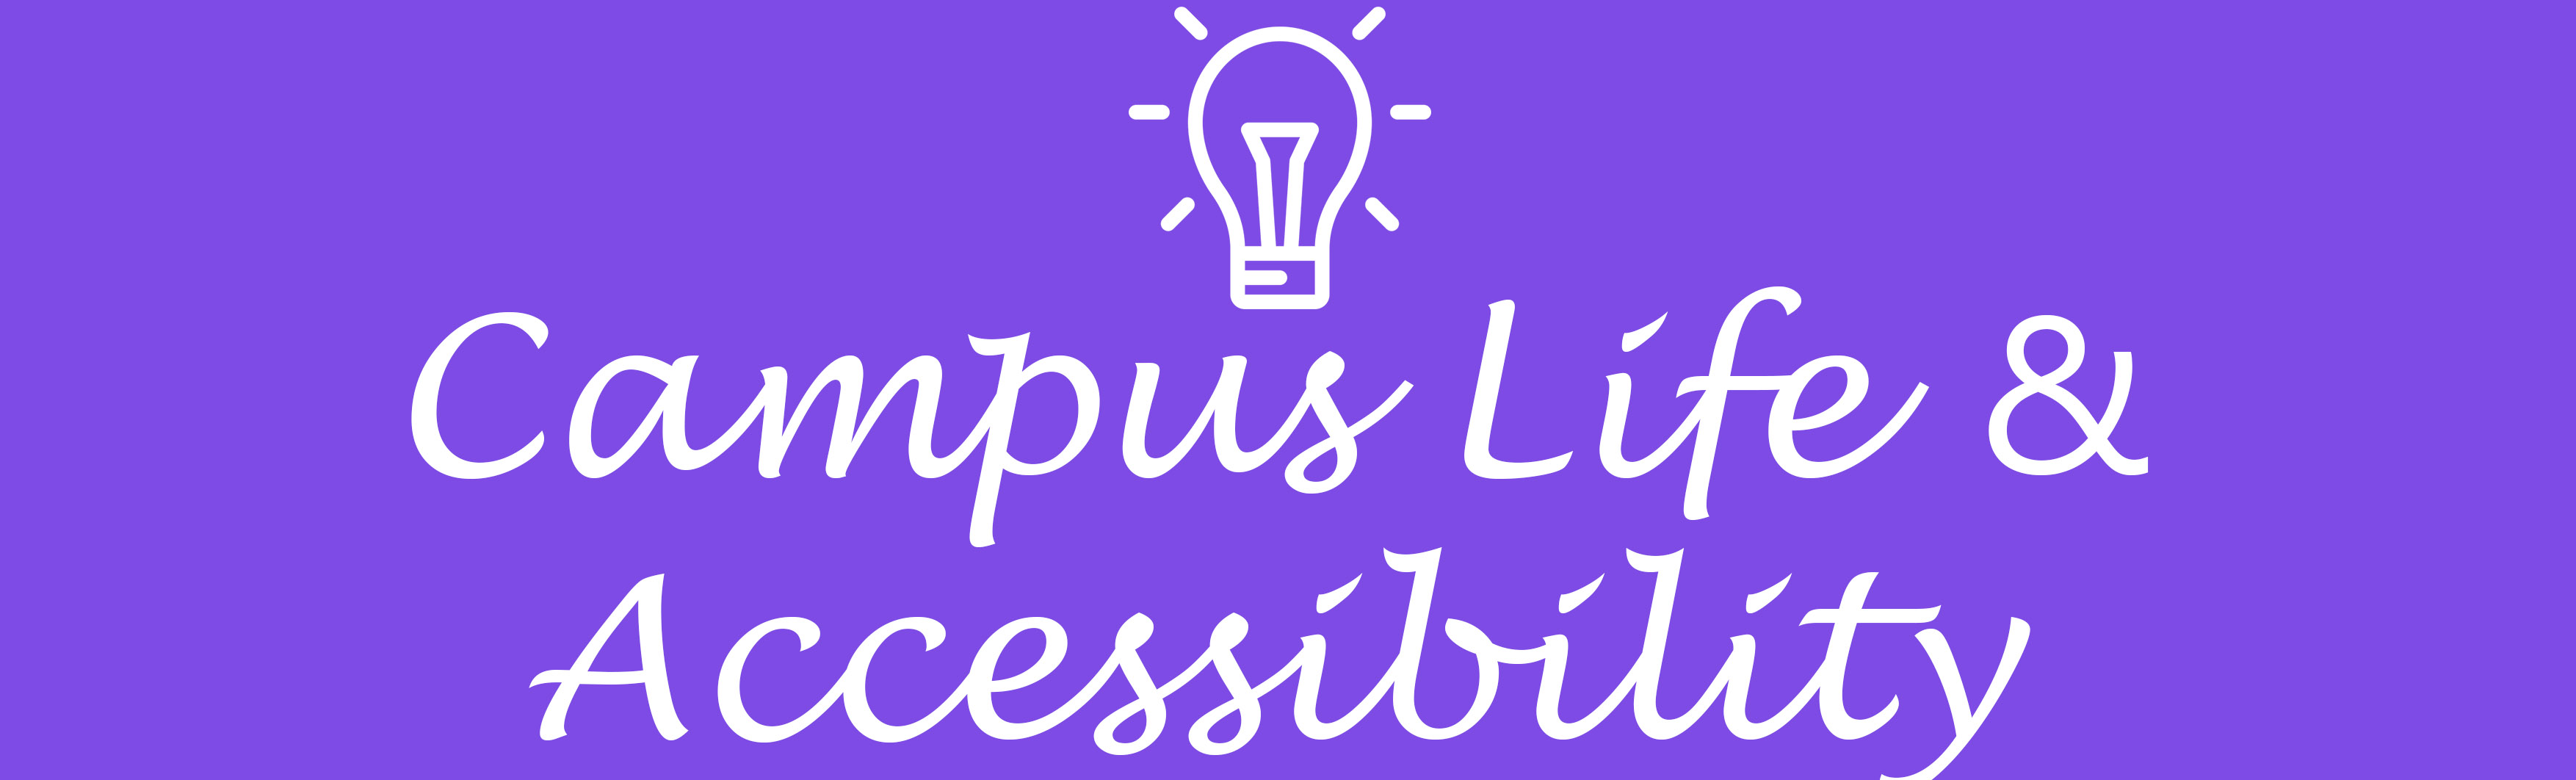 Campus life and accessibility